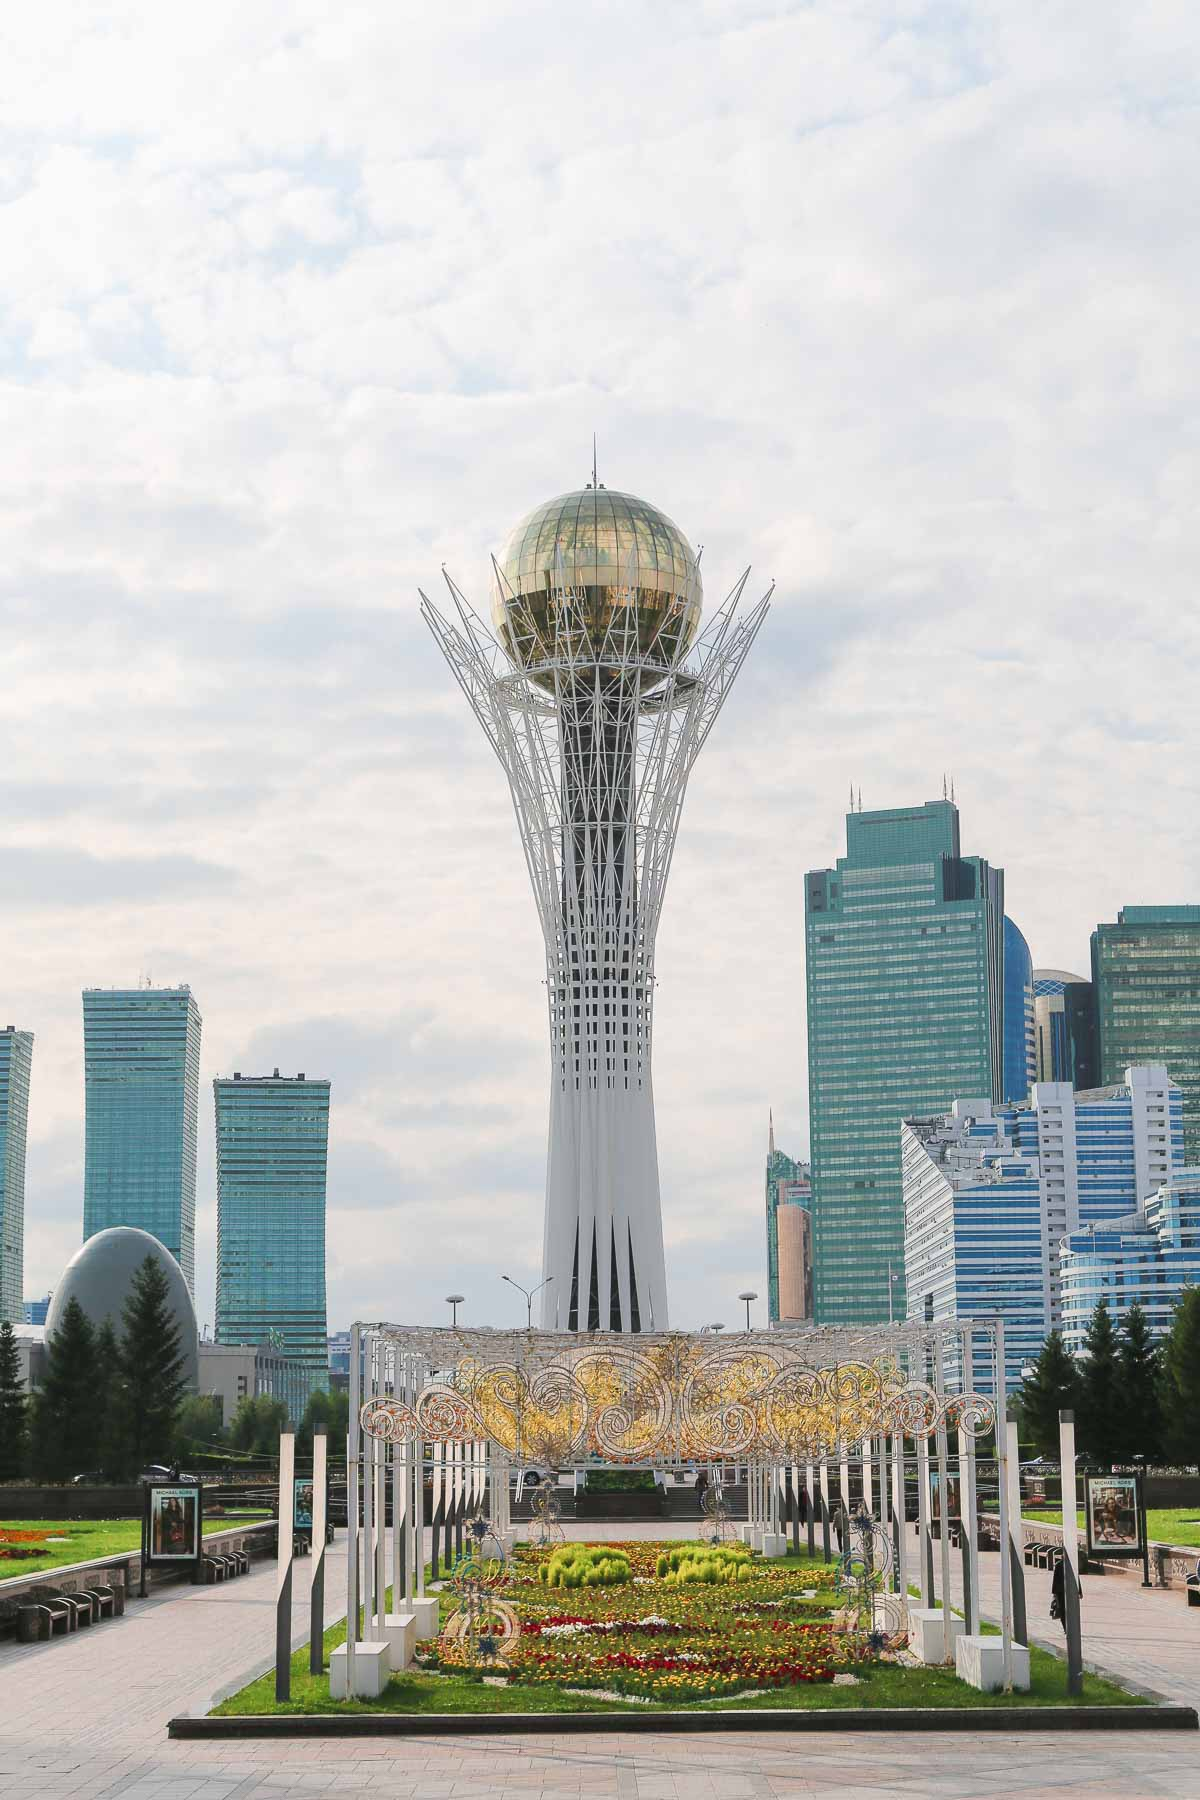 Bayterek Tower Astana